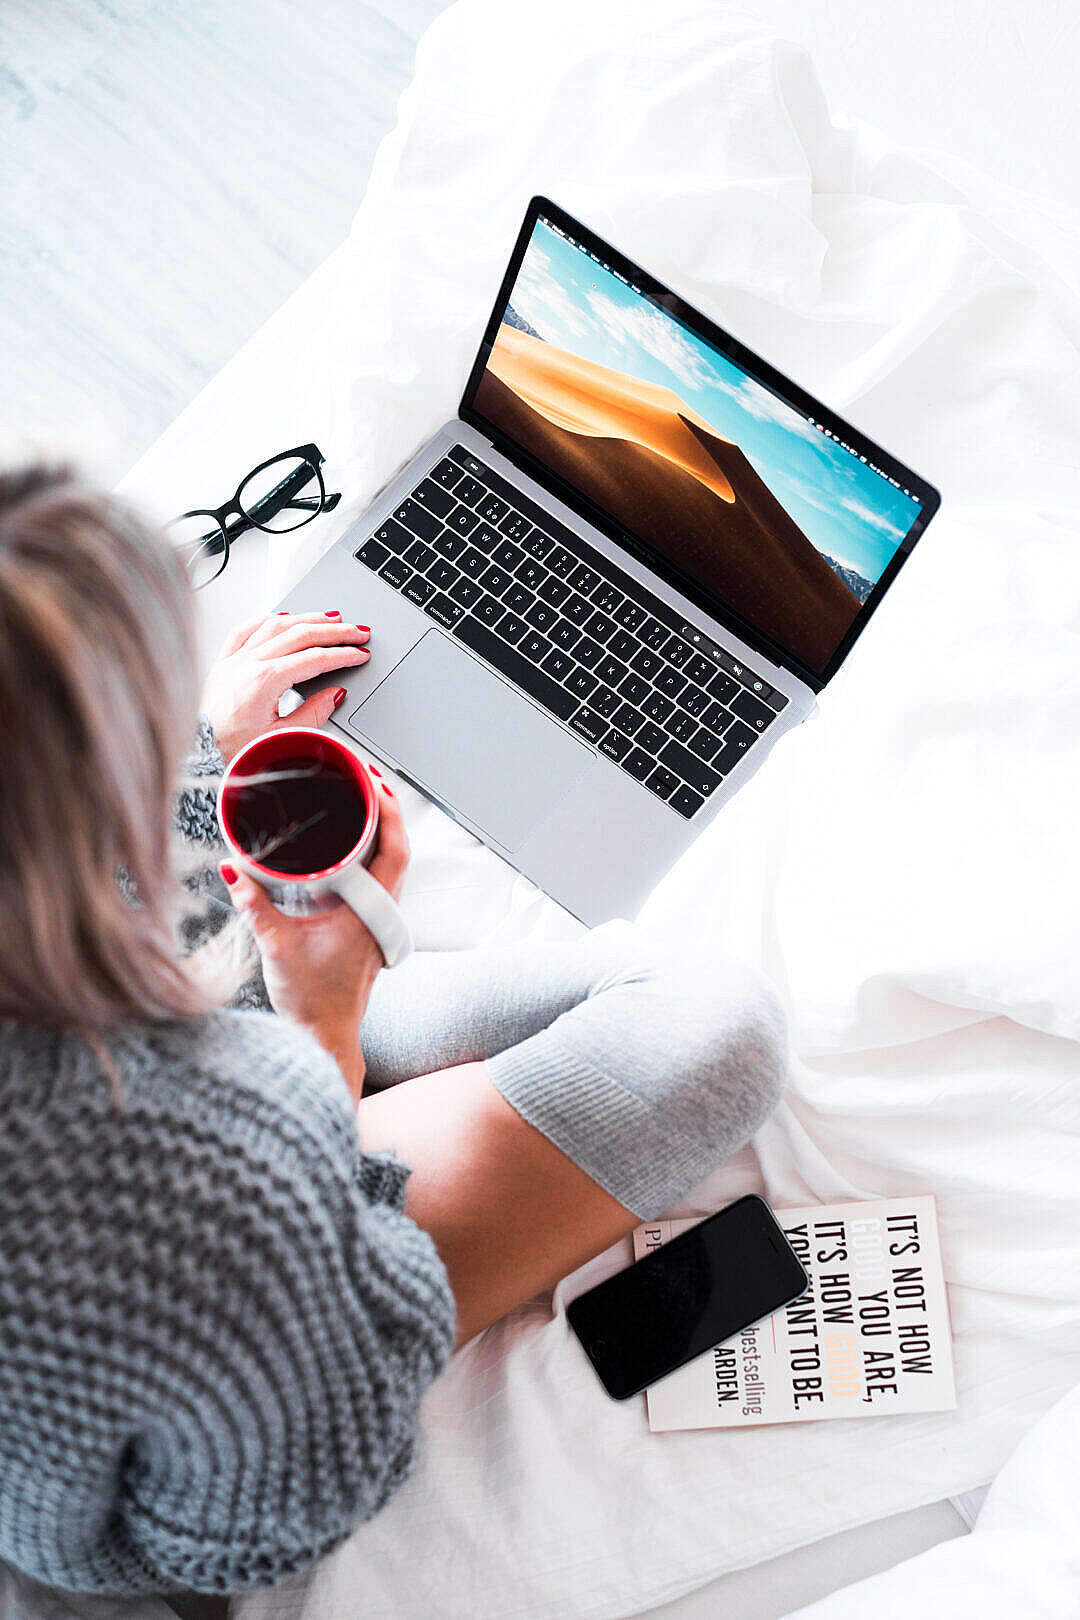 Download Woman Using Her Laptop in Bed FREE Stock Photo